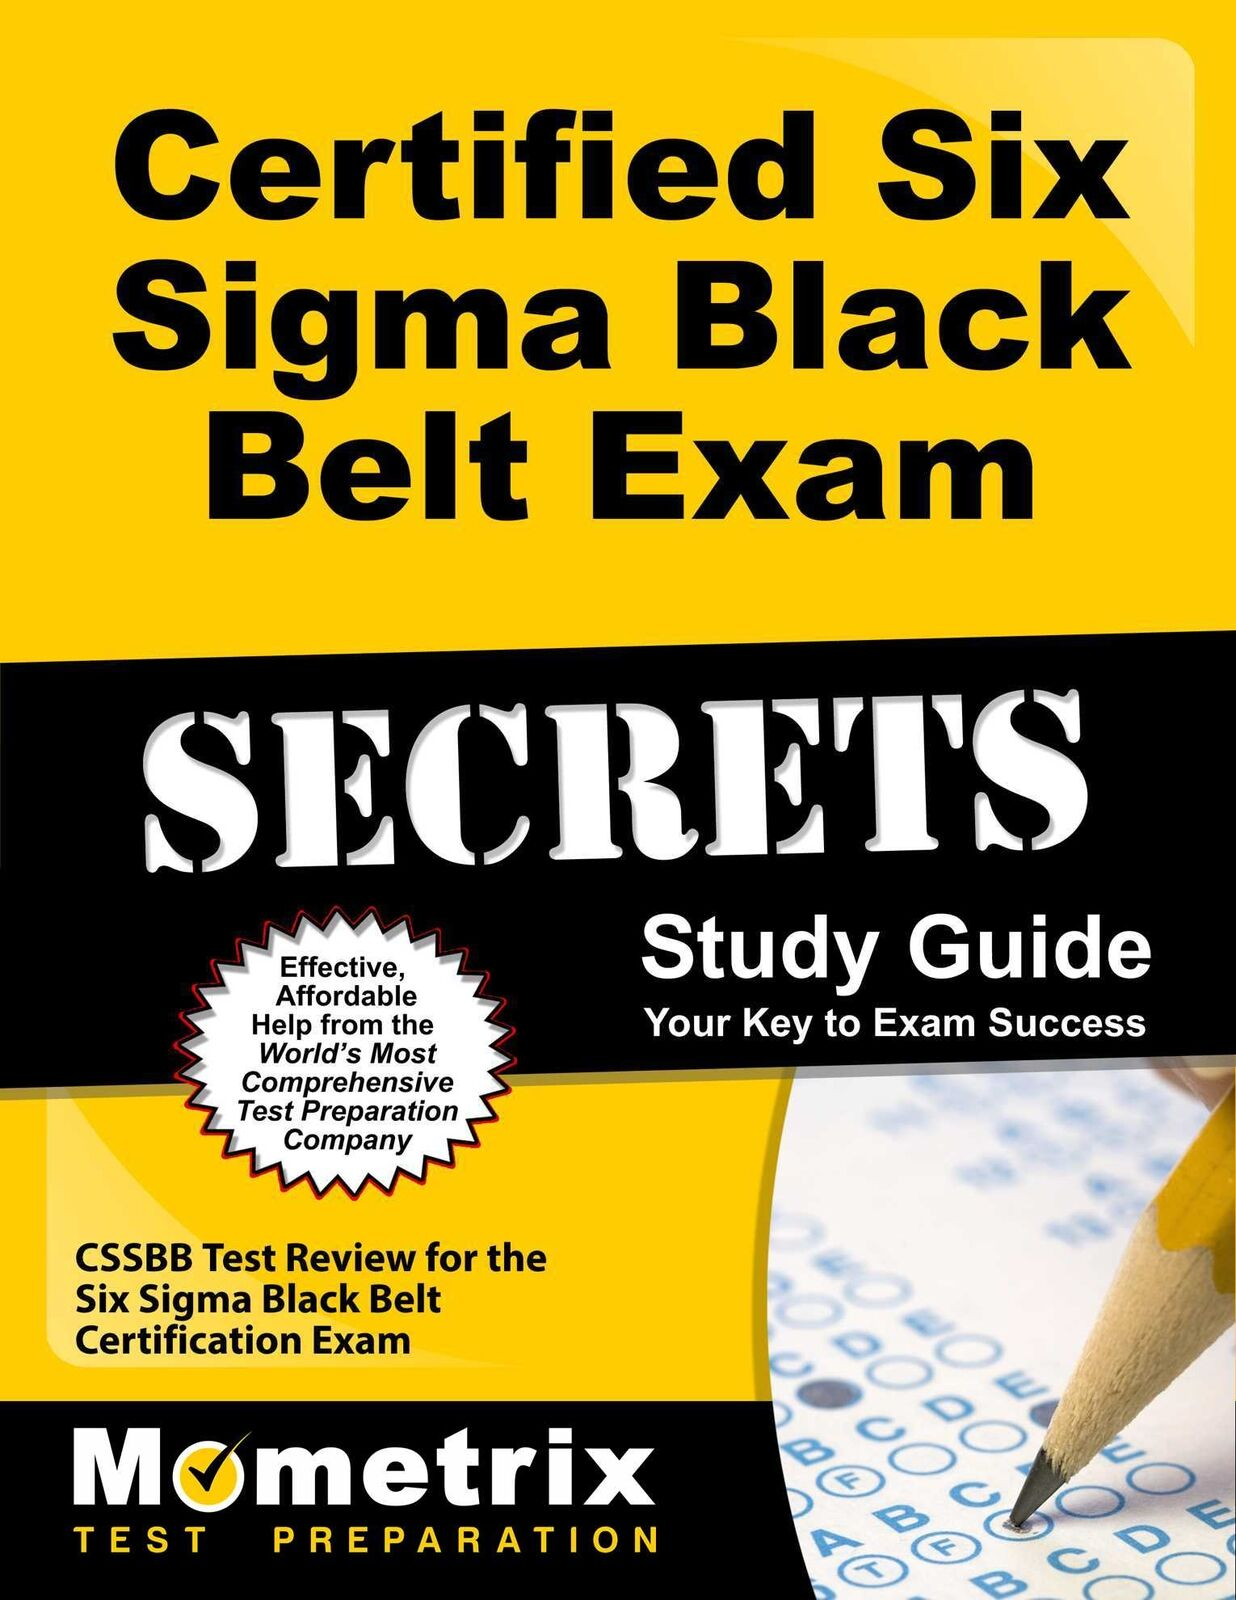 Certified six sigma black belt exam secrets study guide cssbb picture 1 of 1 1betcityfo Image collections